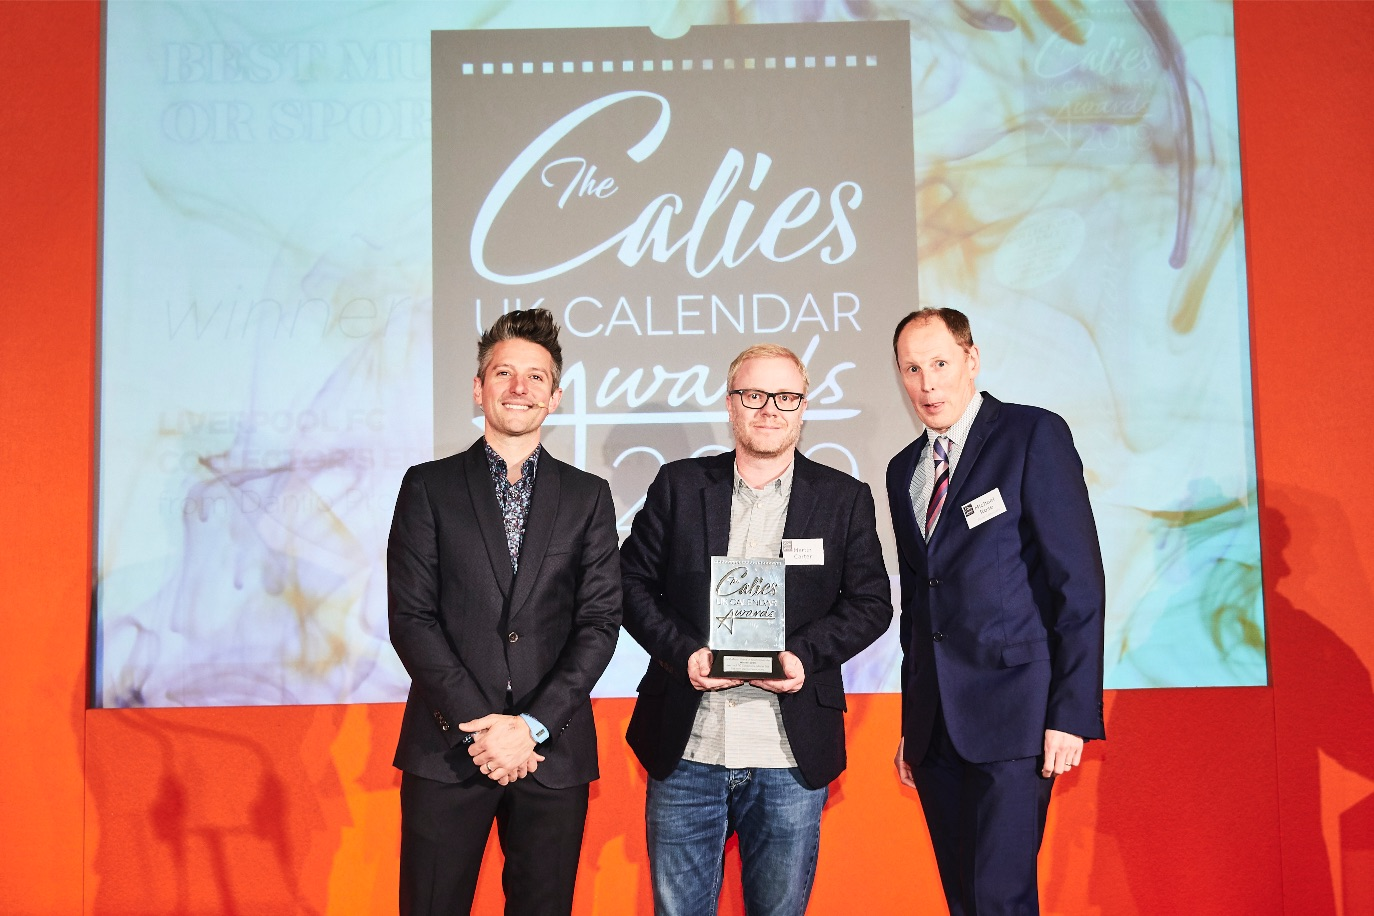 Above: The innovative approach of this product (which plays the Liverpool FC anthem when the lid is lifted) wowed the judges. Danilo's creative director, Martin Carter was very happy indeed to receive the award, presented by managing director of Rose Calendars, Michael Rose.